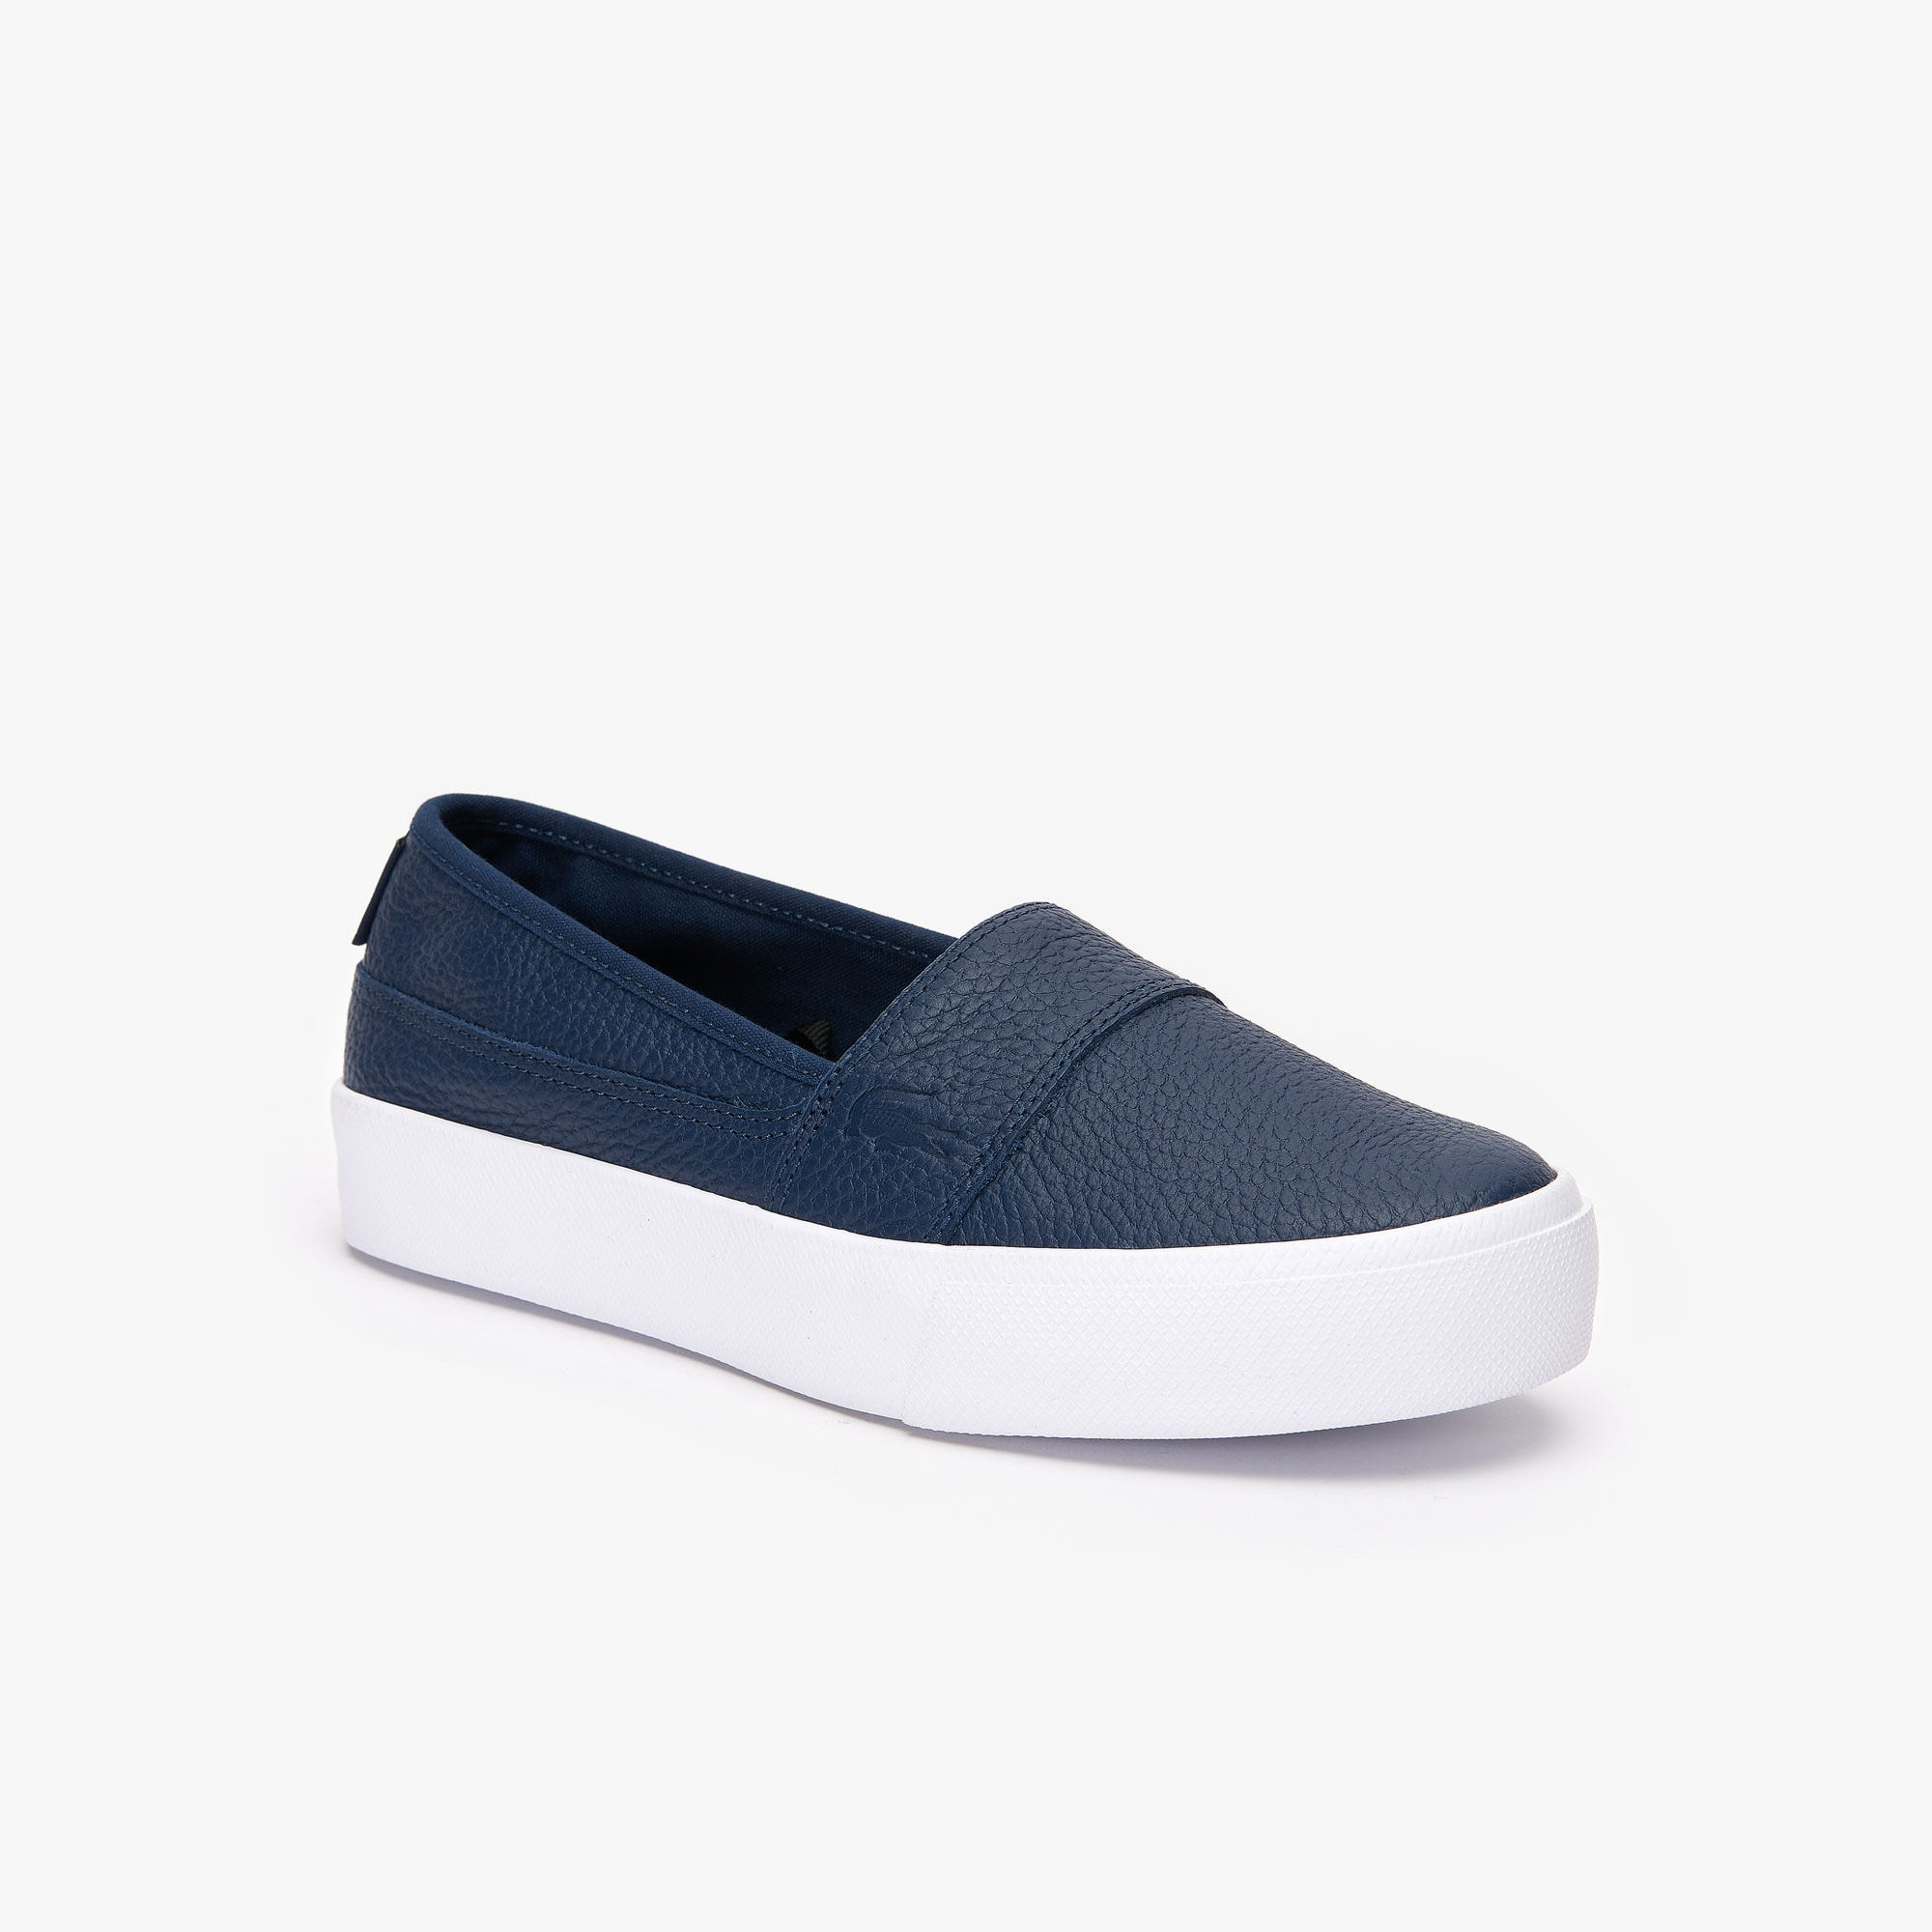 Slip-on Marice Plus Grand femme en cuir